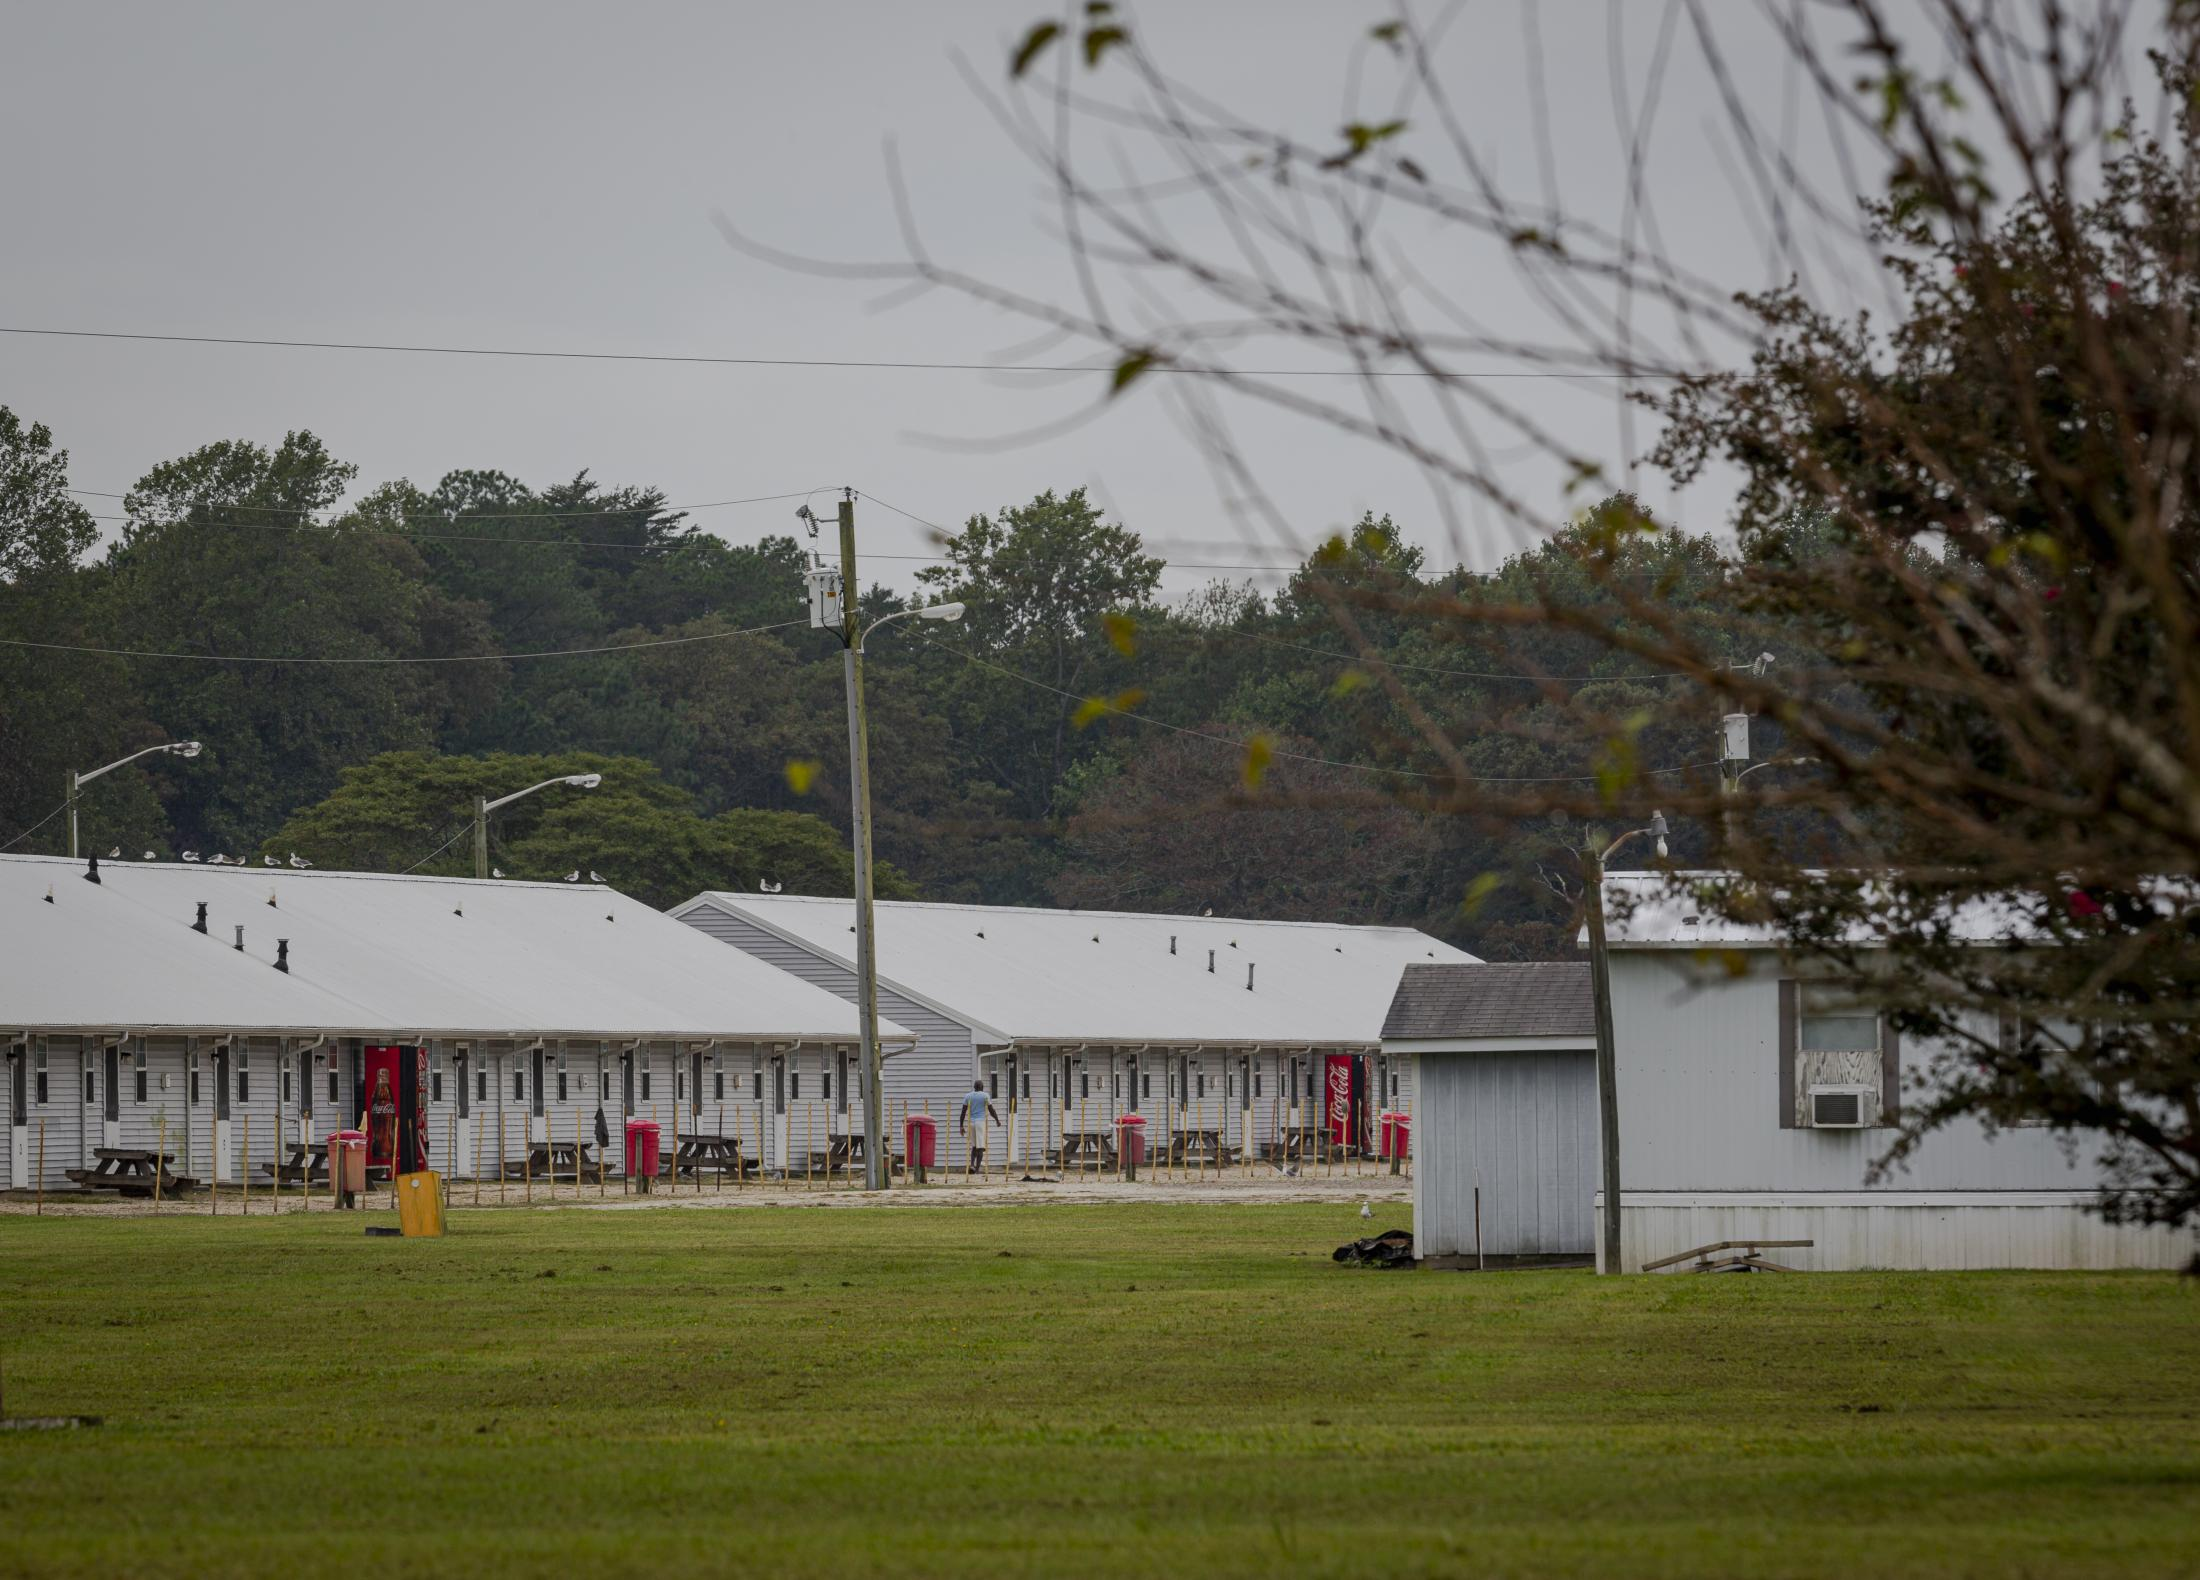 CHERITON, VA - September 26, 2020: Barracks where agriculture workers stay during each season. Seasonal farmworkers are brought by the thousands to toil in the tomato fields, since the start of the covid-19 pandemic, their conditions have worsened. Photo: Carlos Bernate for The New York Times